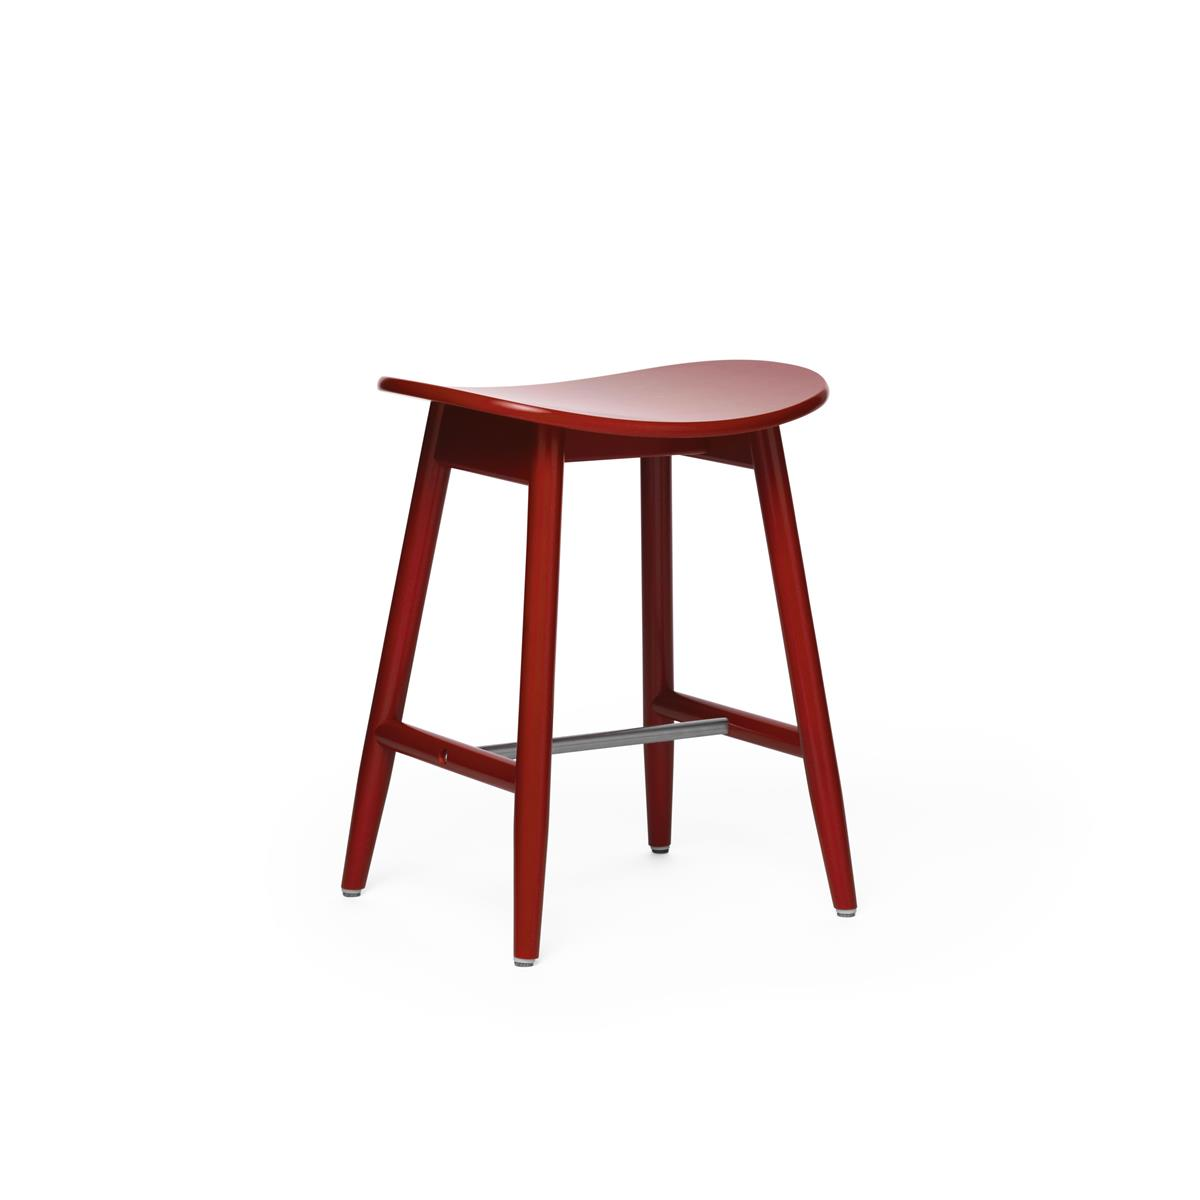 Icha Stool - Red Lacquered